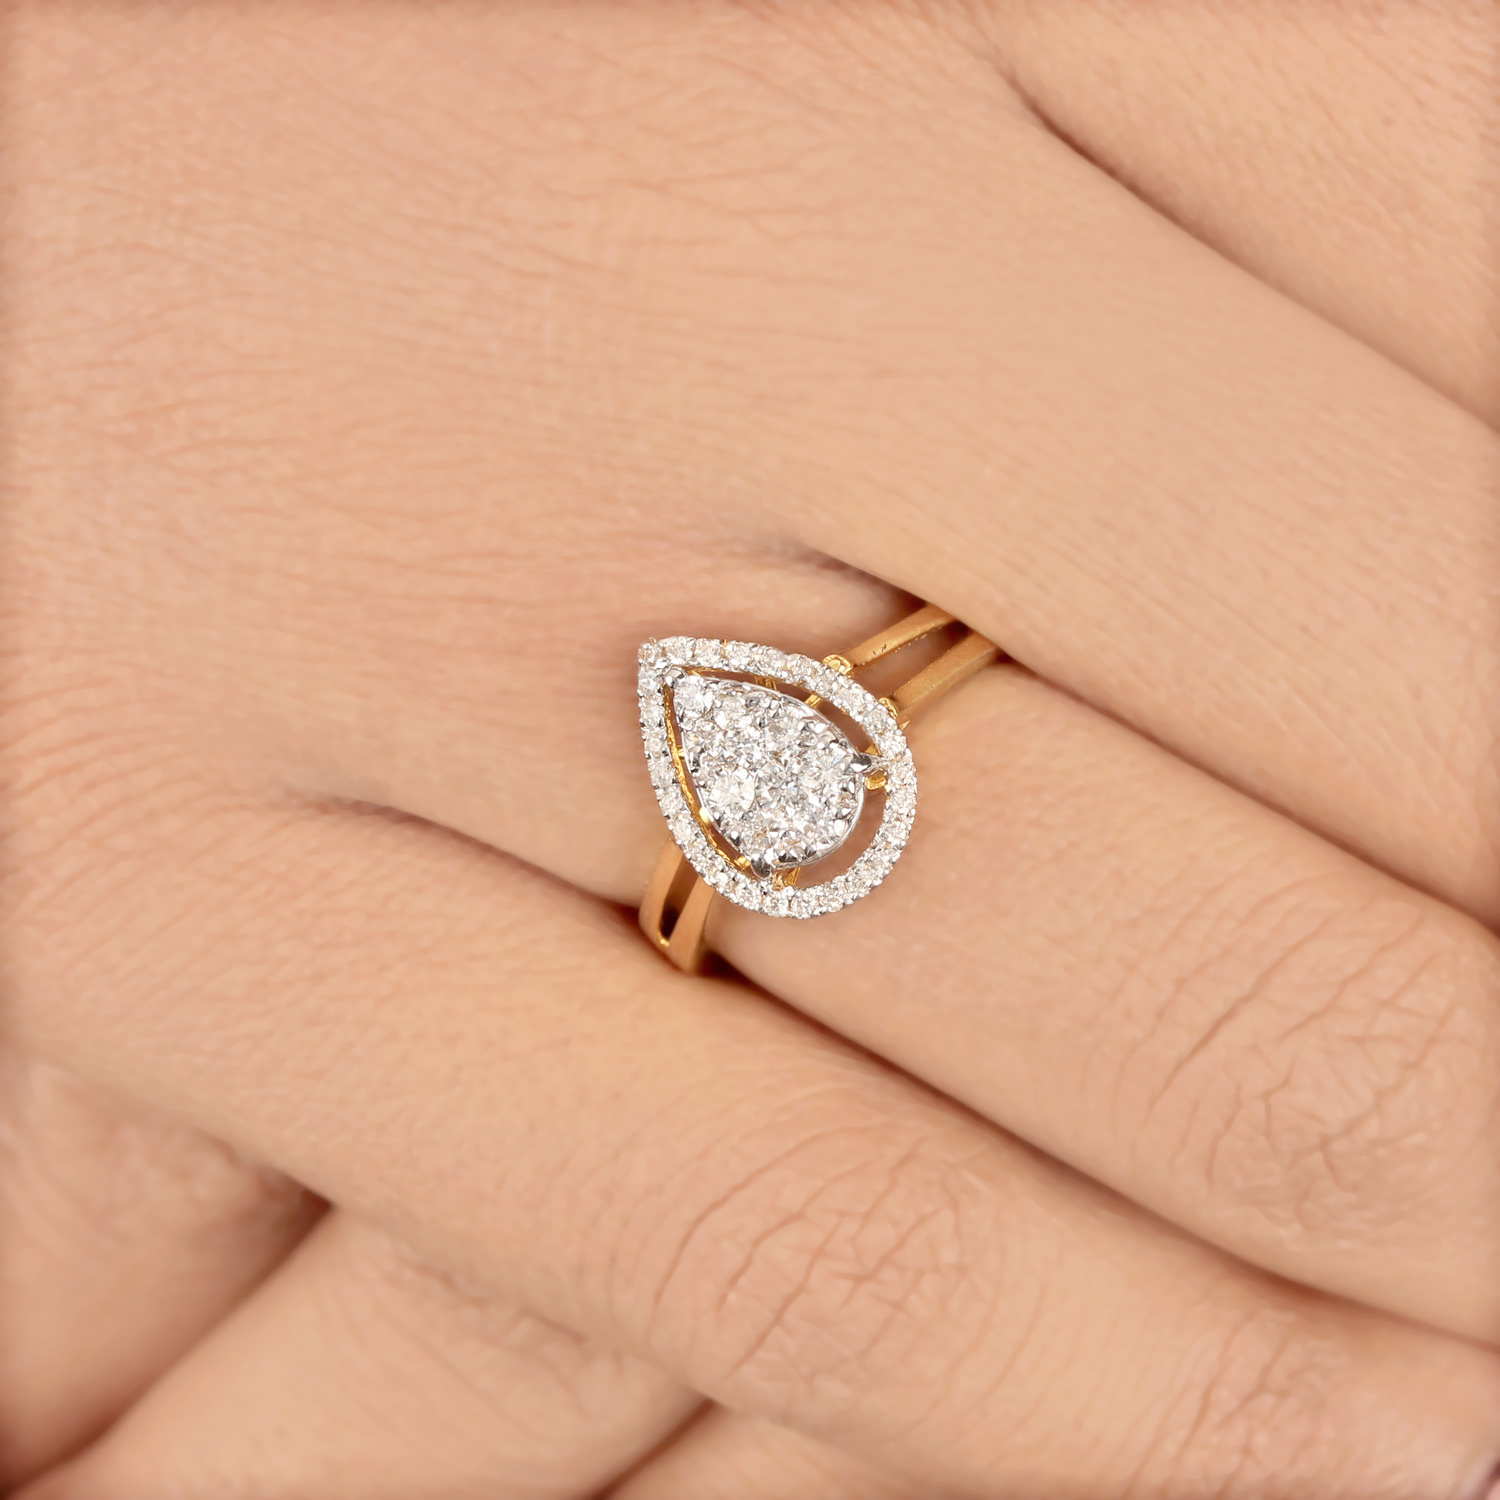 Gold Ring With Pear Design